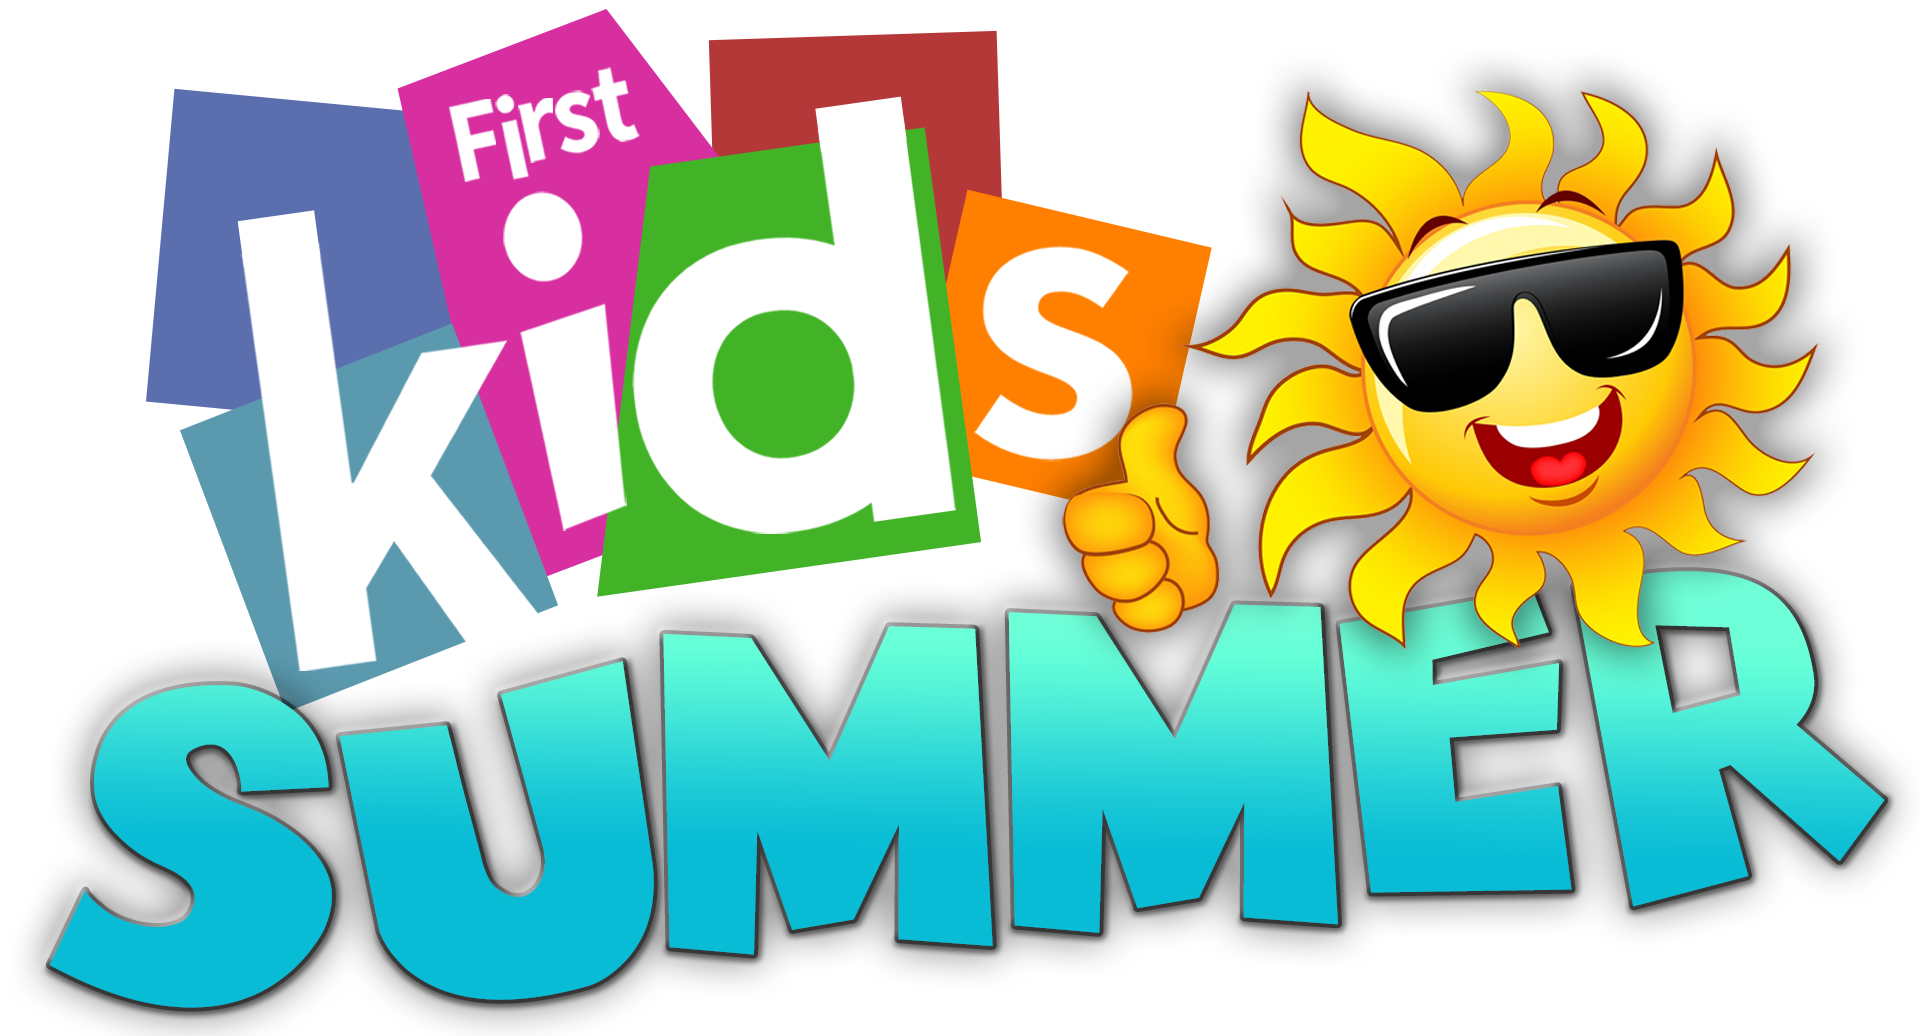 First Kids Summer Logo Blue Summer.png